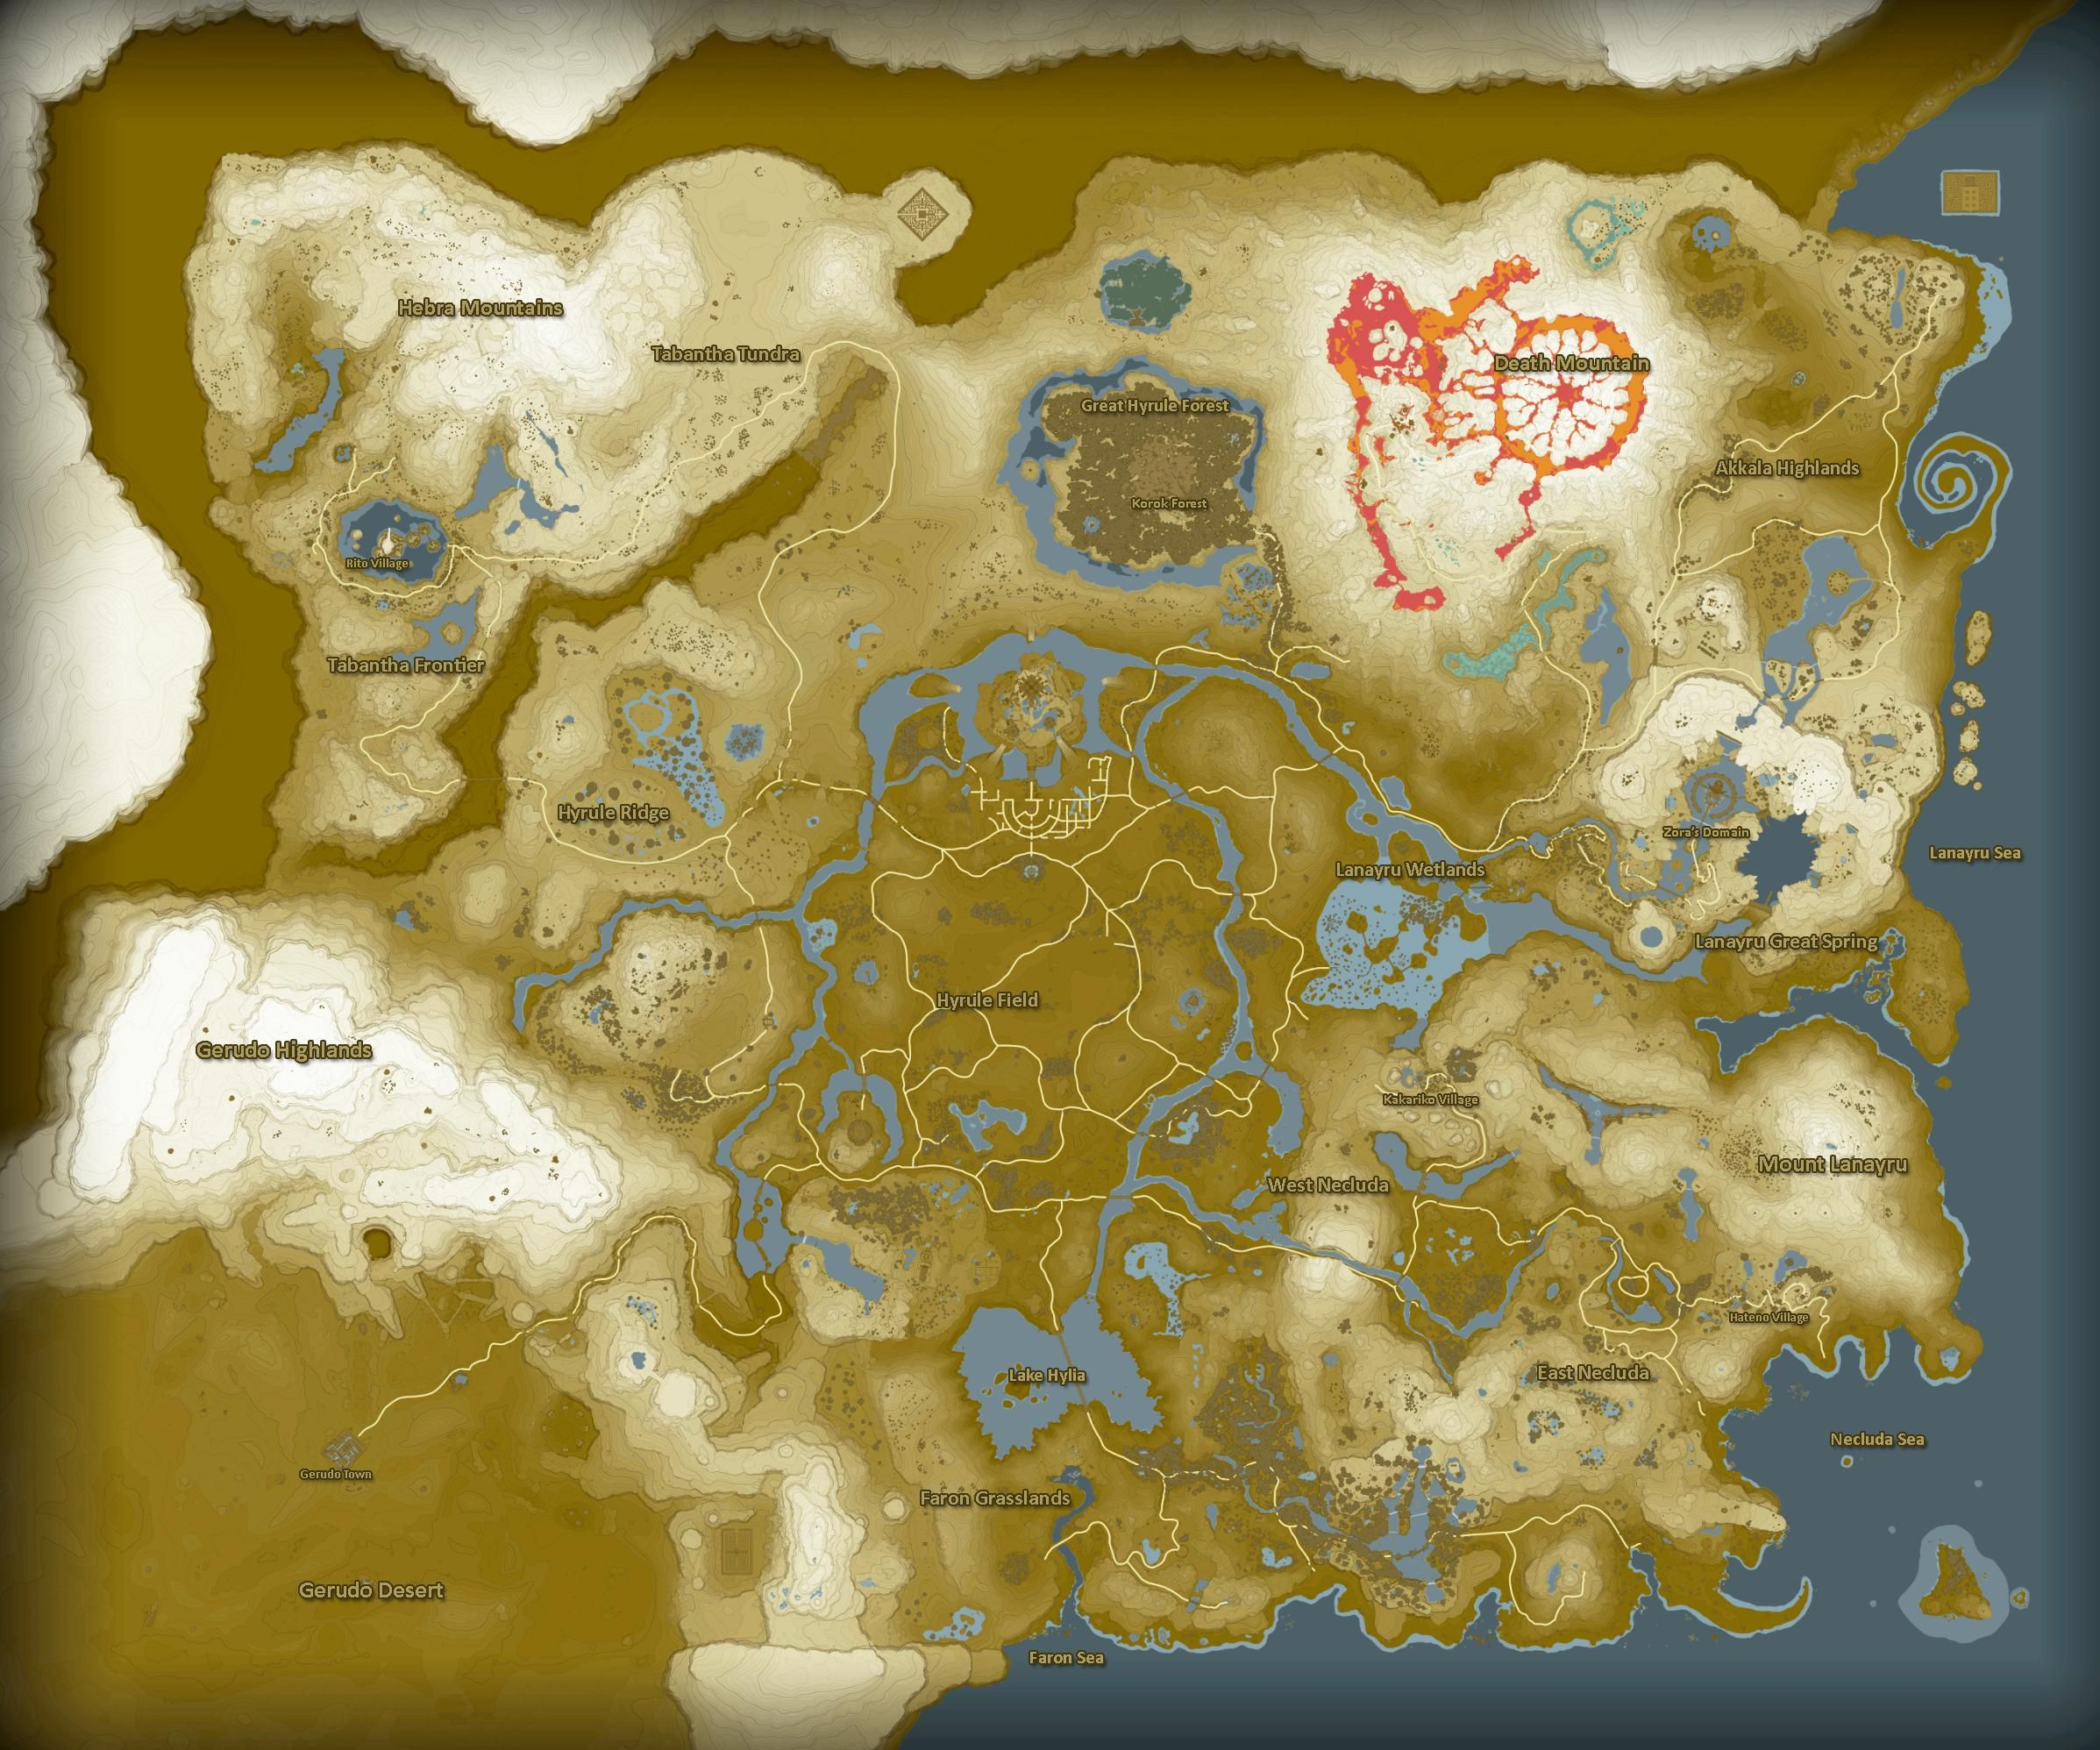 The Legend Of Zelda Breath Of The Wild Full Map Zelda Campaign